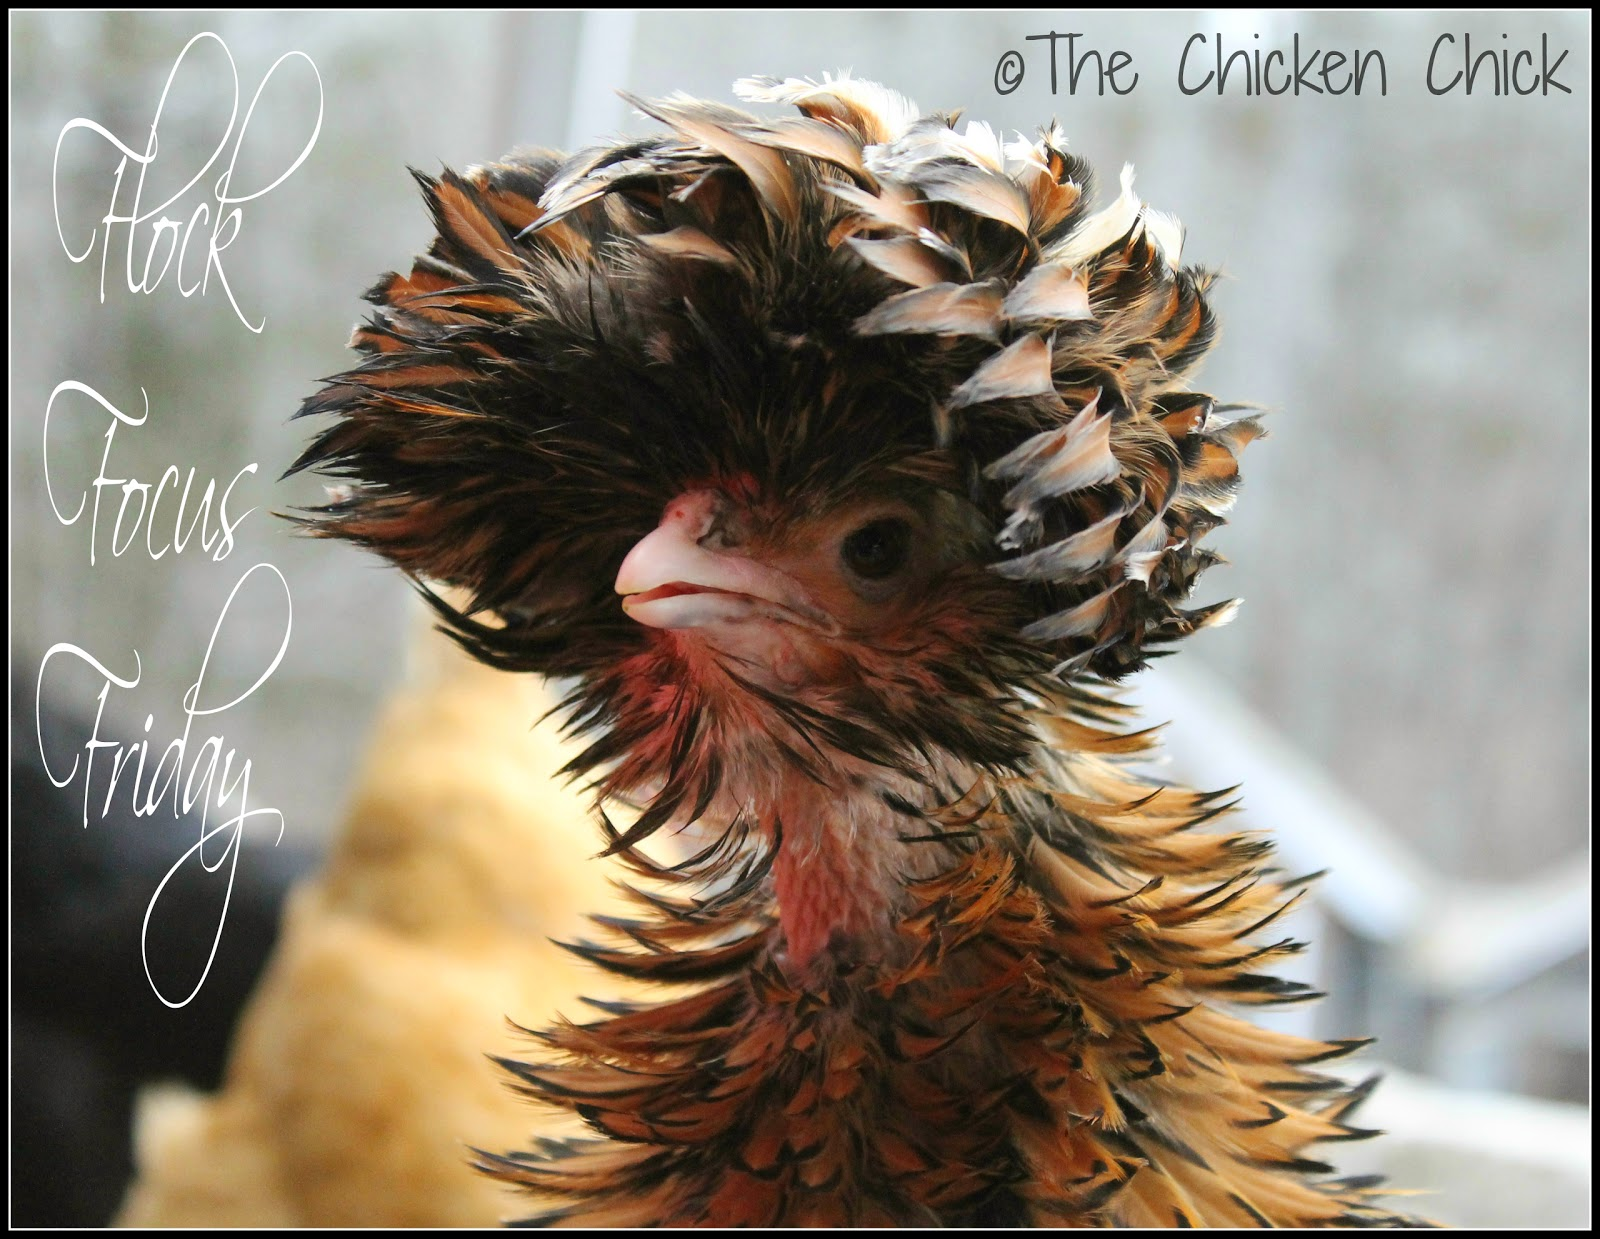 Tolbunt Polish Frizzle hen, molting.